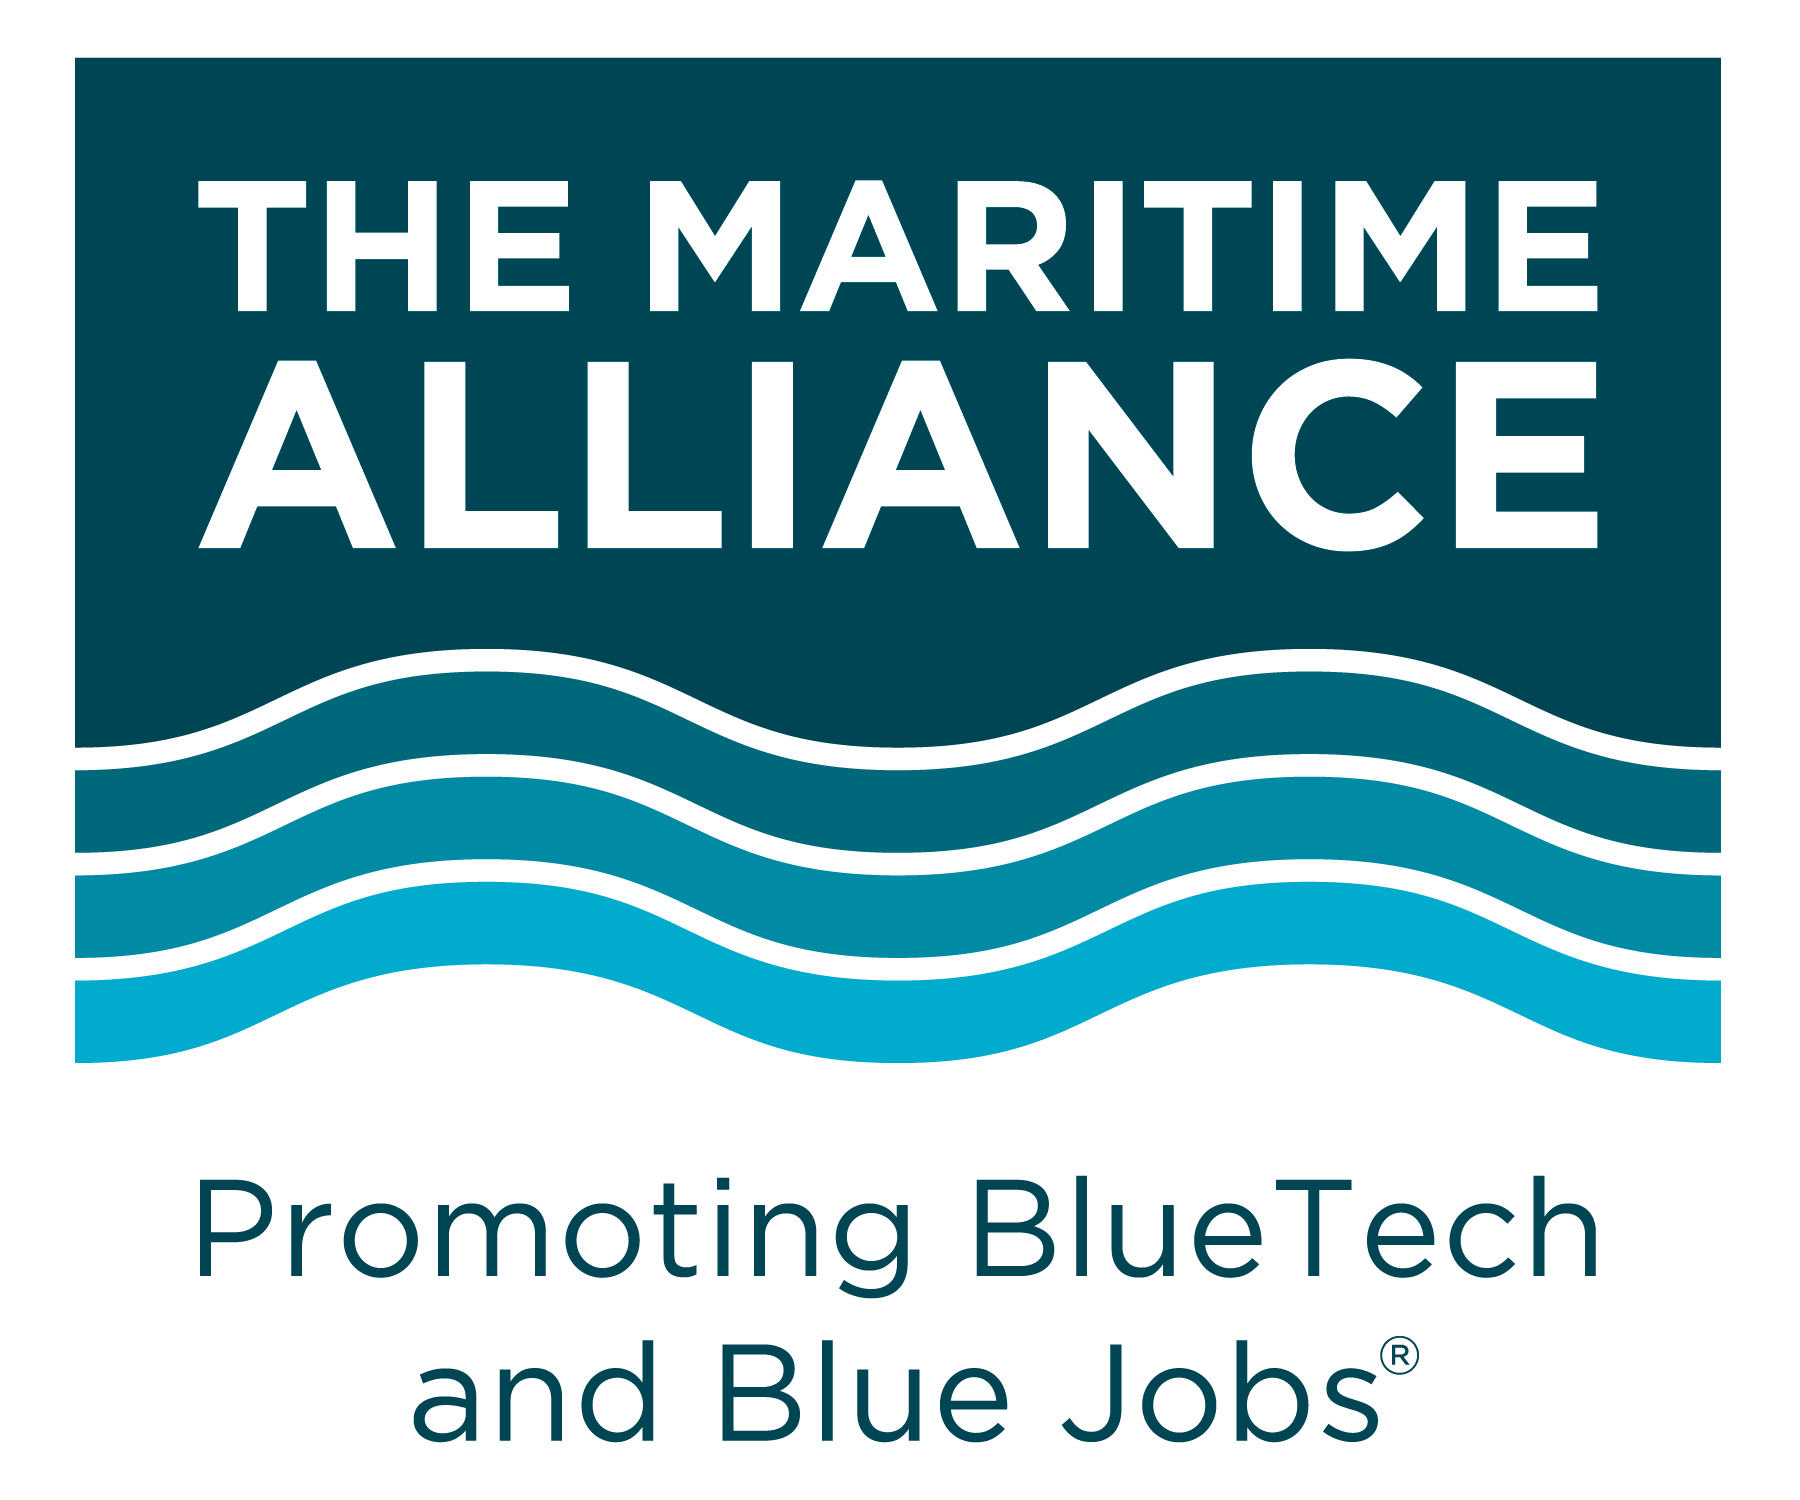 TheMaritimeAlliance_Logo_Tagline_Color.png